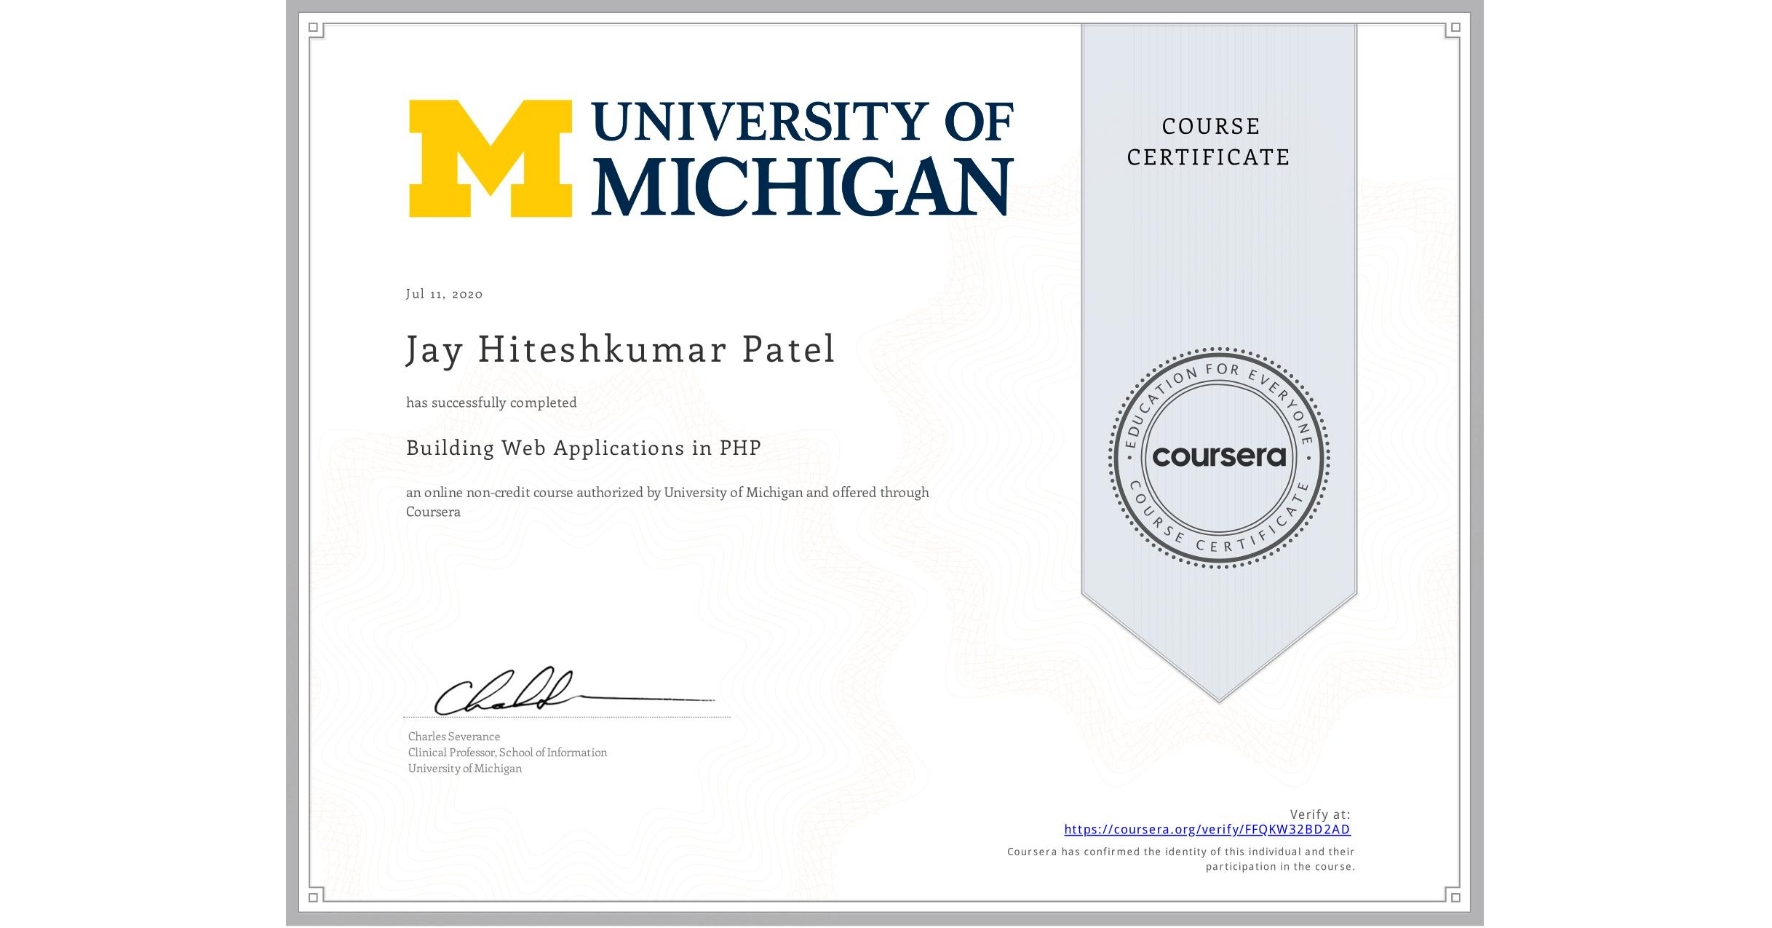 View certificate for Jay Hiteshkumar Patel, Building Web Applications in PHP, an online non-credit course authorized by University of Michigan and offered through Coursera